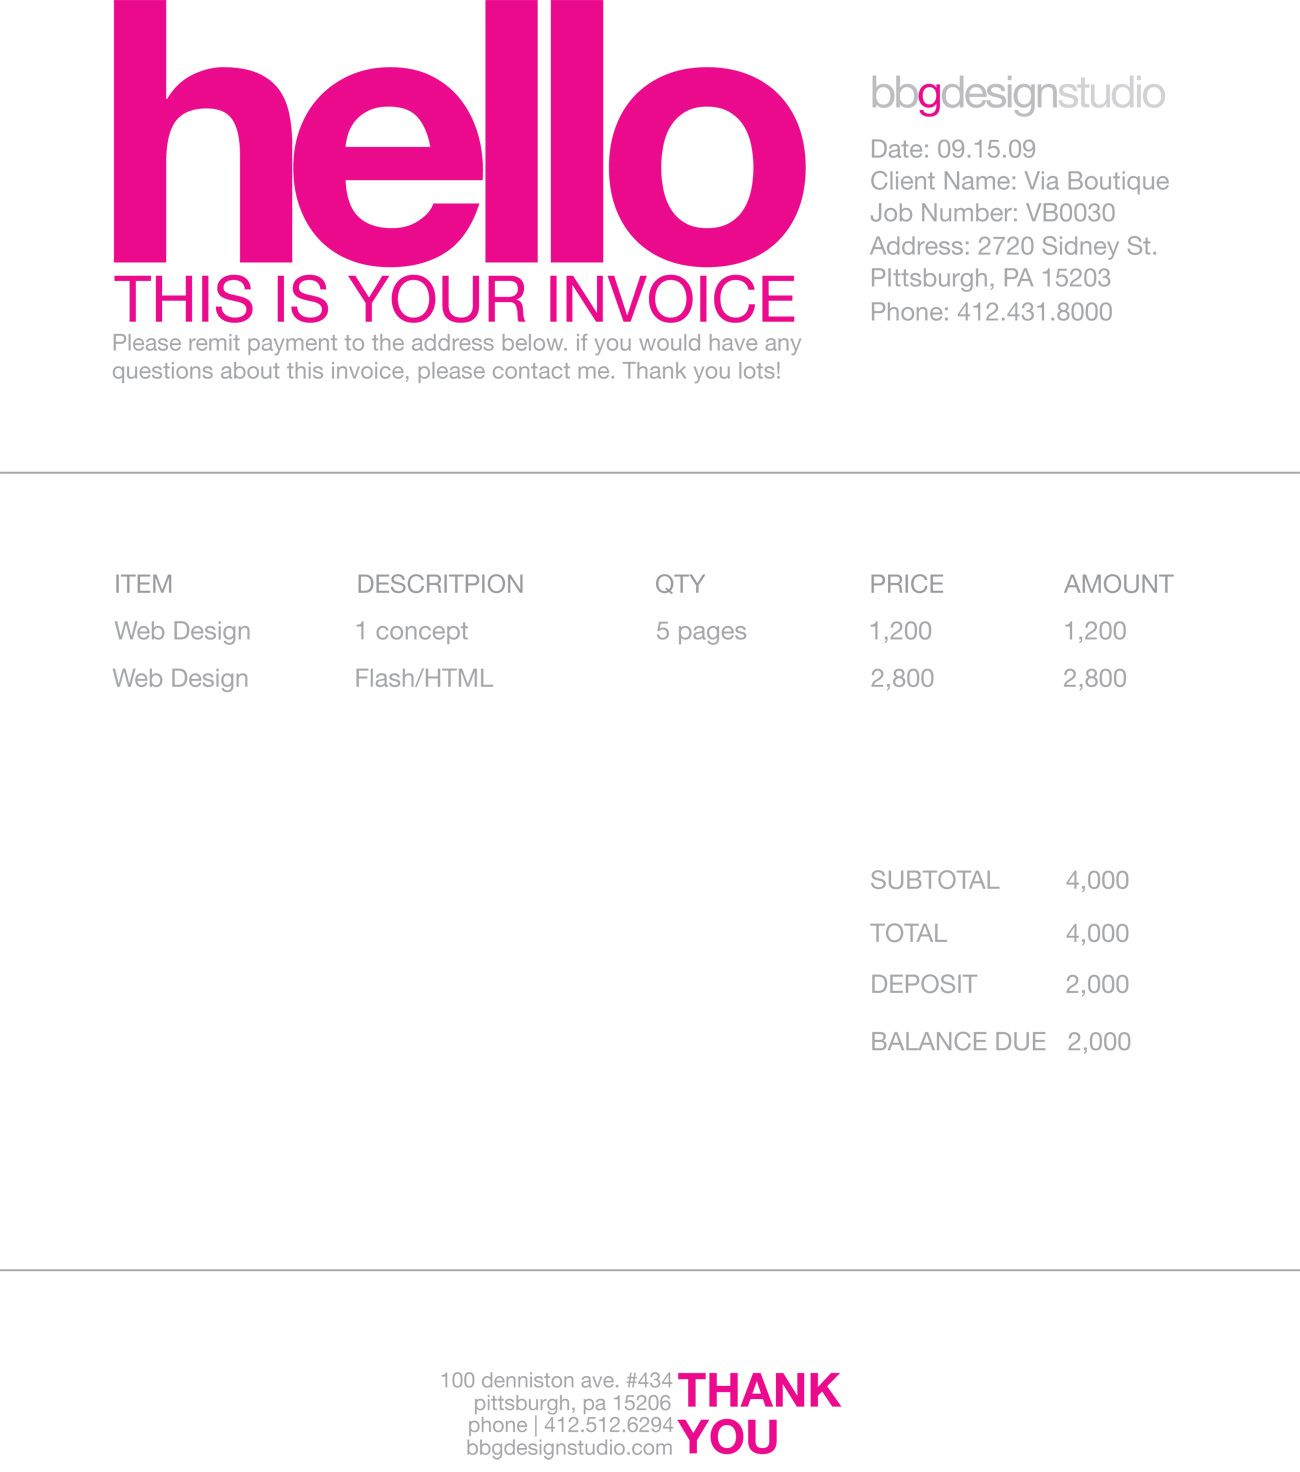 Maidofhonortoastus  Unusual  Images About Invoice Design On Pinterest With Entrancing Nvc Invoice Besides Consultant Invoice Furthermore Toyota Invoice Price With Nice Free Invoice Format In Word Also Apple Invoice In Addition Job Invoice Template And Pay Invoice Ebay As Well As Word Invoice Additionally Create Your Own Invoice From Pinterestcom With Maidofhonortoastus  Entrancing  Images About Invoice Design On Pinterest With Nice Nvc Invoice Besides Consultant Invoice Furthermore Toyota Invoice Price And Unusual Free Invoice Format In Word Also Apple Invoice In Addition Job Invoice Template From Pinterestcom